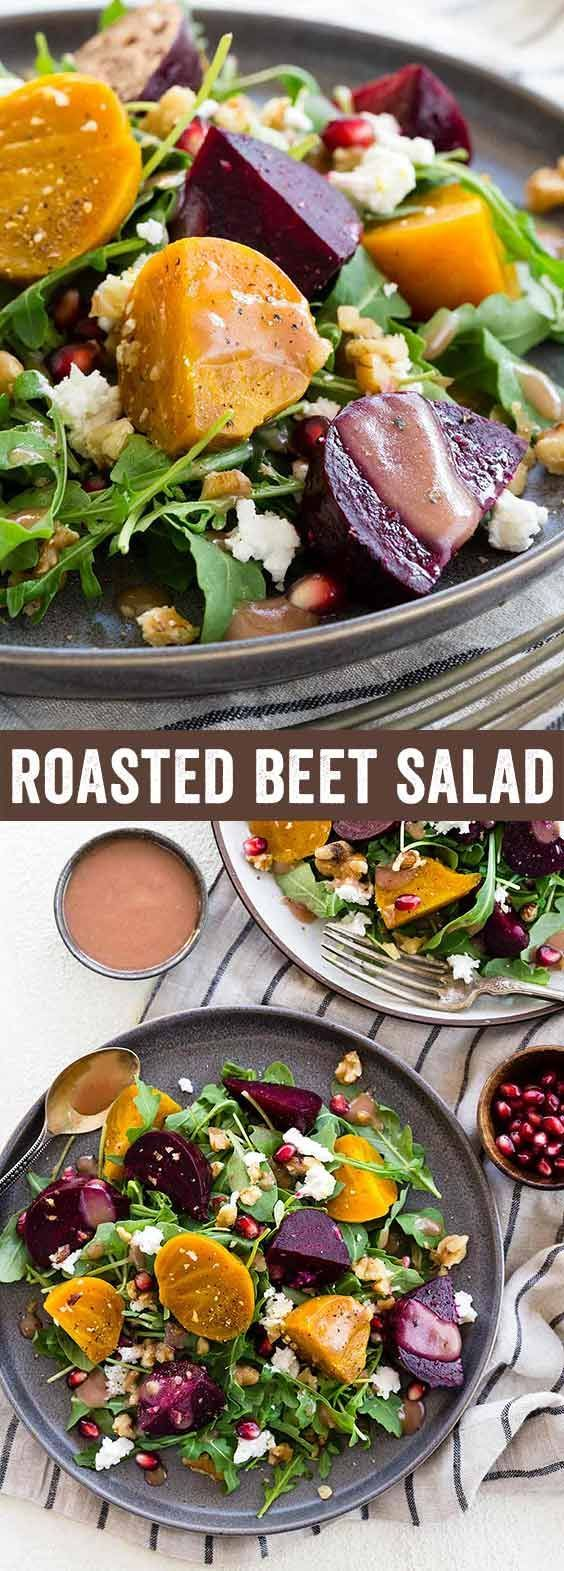 Roasted beet salad with goat cheese topped with a sweet and tangy pomegranate dressing. Walnuts add a nice crunch to each healthy bite! via @foodiegavin @naturesintenttv #AD